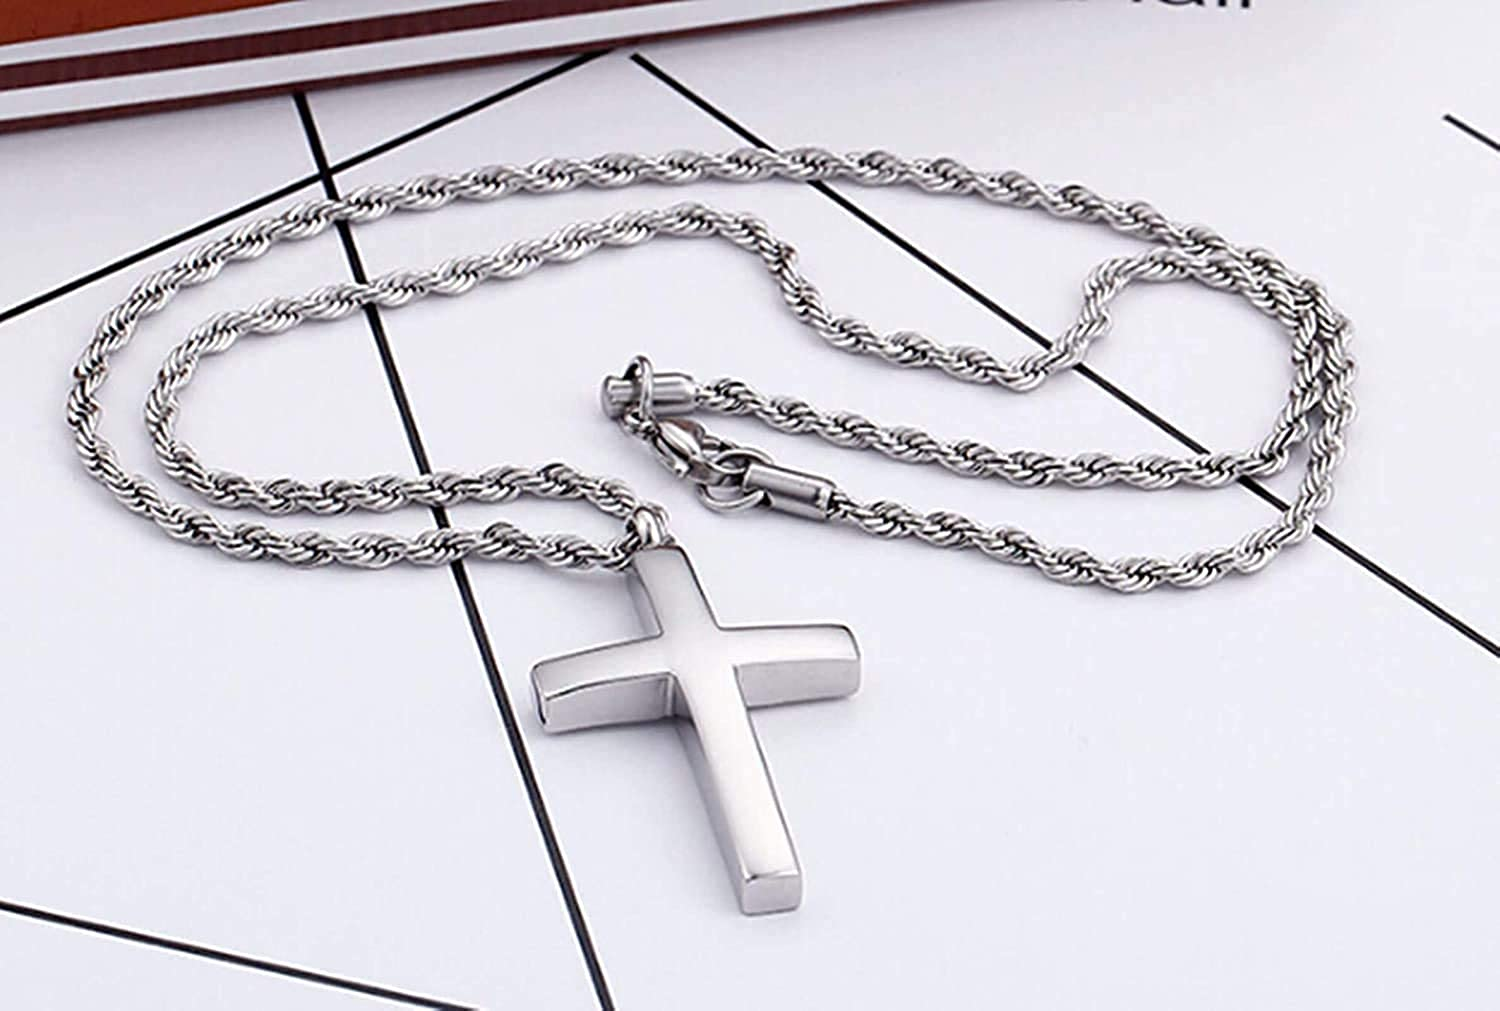 LOPEZ KENT Mens Necklace Stainless Steel Necklace Pendant Polished Cross Necklace Silver Necklace Pendant